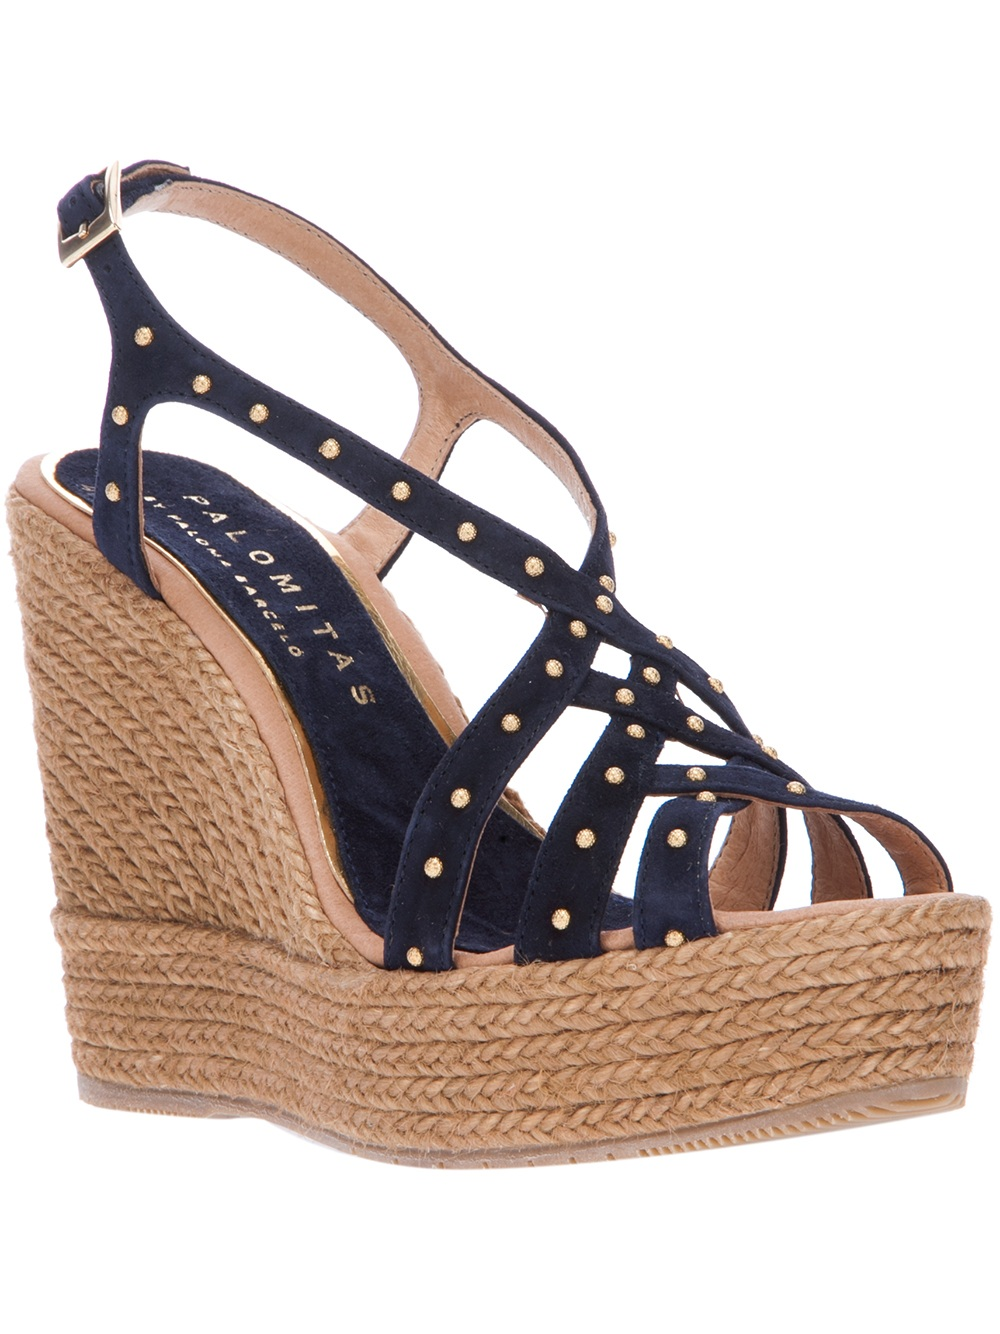 Palomitas by Paloma Barceló Studded Wedge Espadrilles prices for sale low shipping fee for sale buy cheap classic cheap price from china sale amazon 6P8XlqzQ